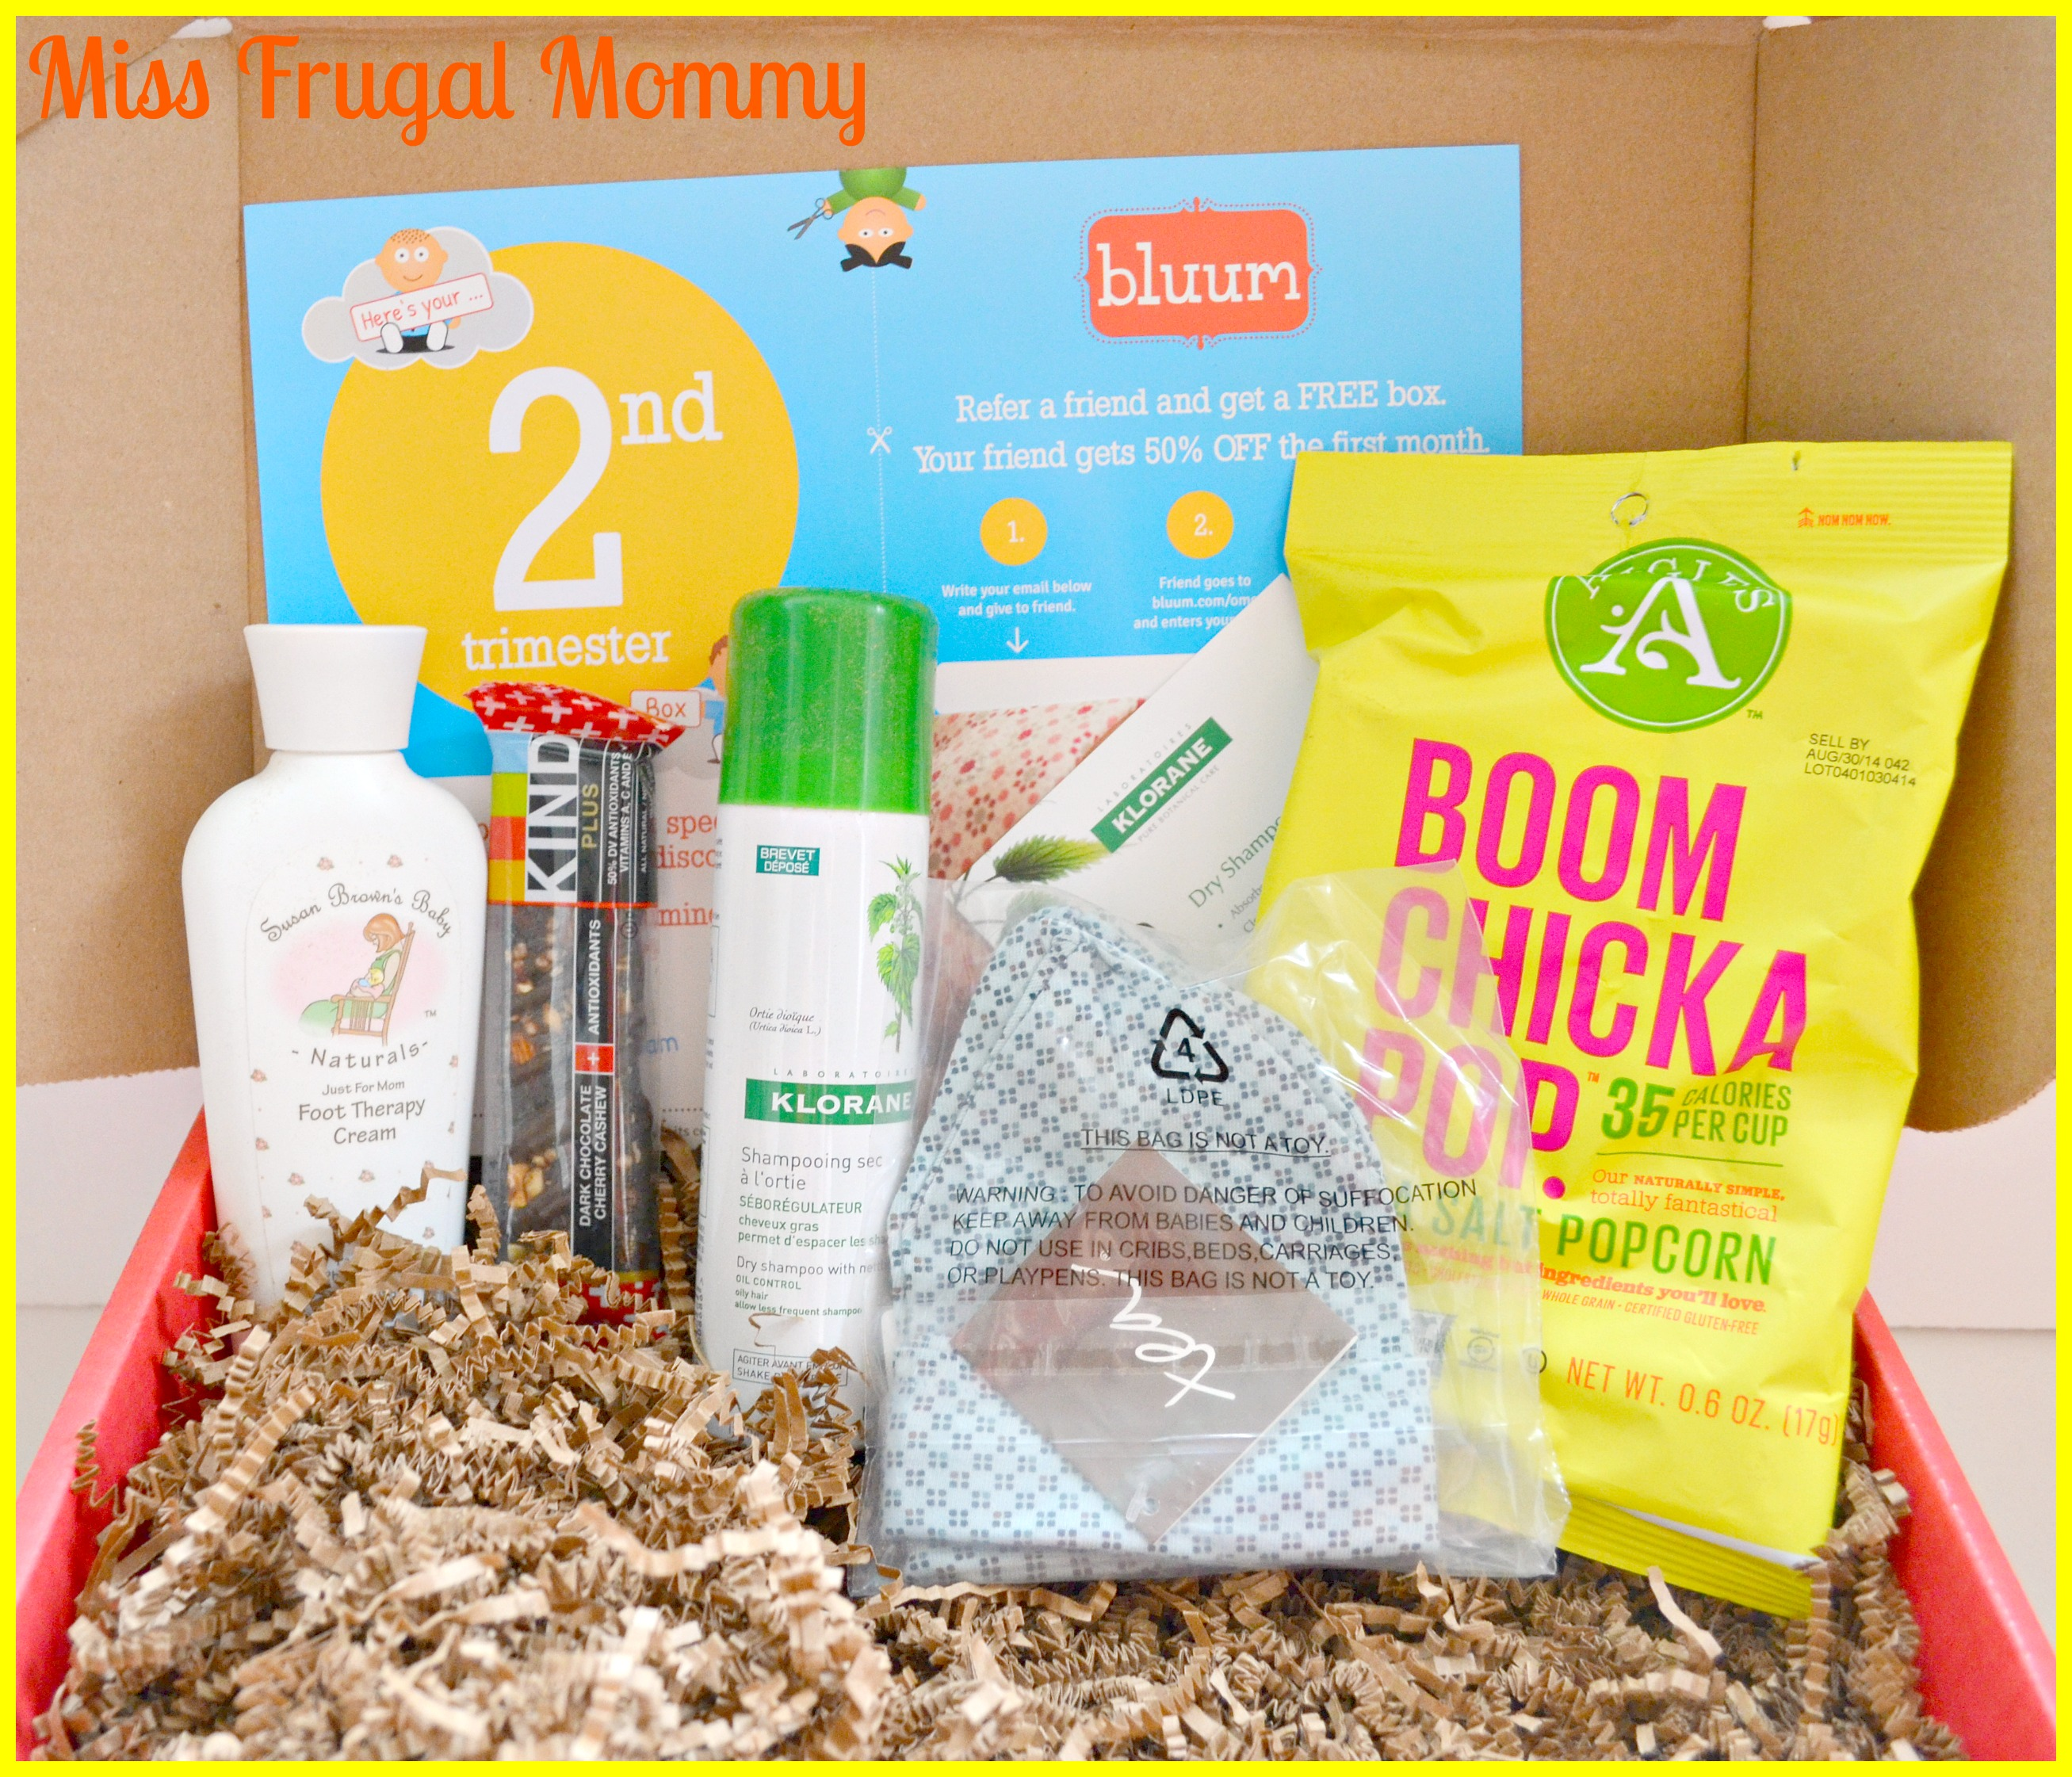 Bluum Subscription Box From Pregnancy To Preschool (Getting Ready For Baby Gift Guide)  sc 1 st  Miss Frugal Mommy & Bluum Subscription Box: From Pregnancy To Preschool (Getting Ready ... Aboutintivar.Com